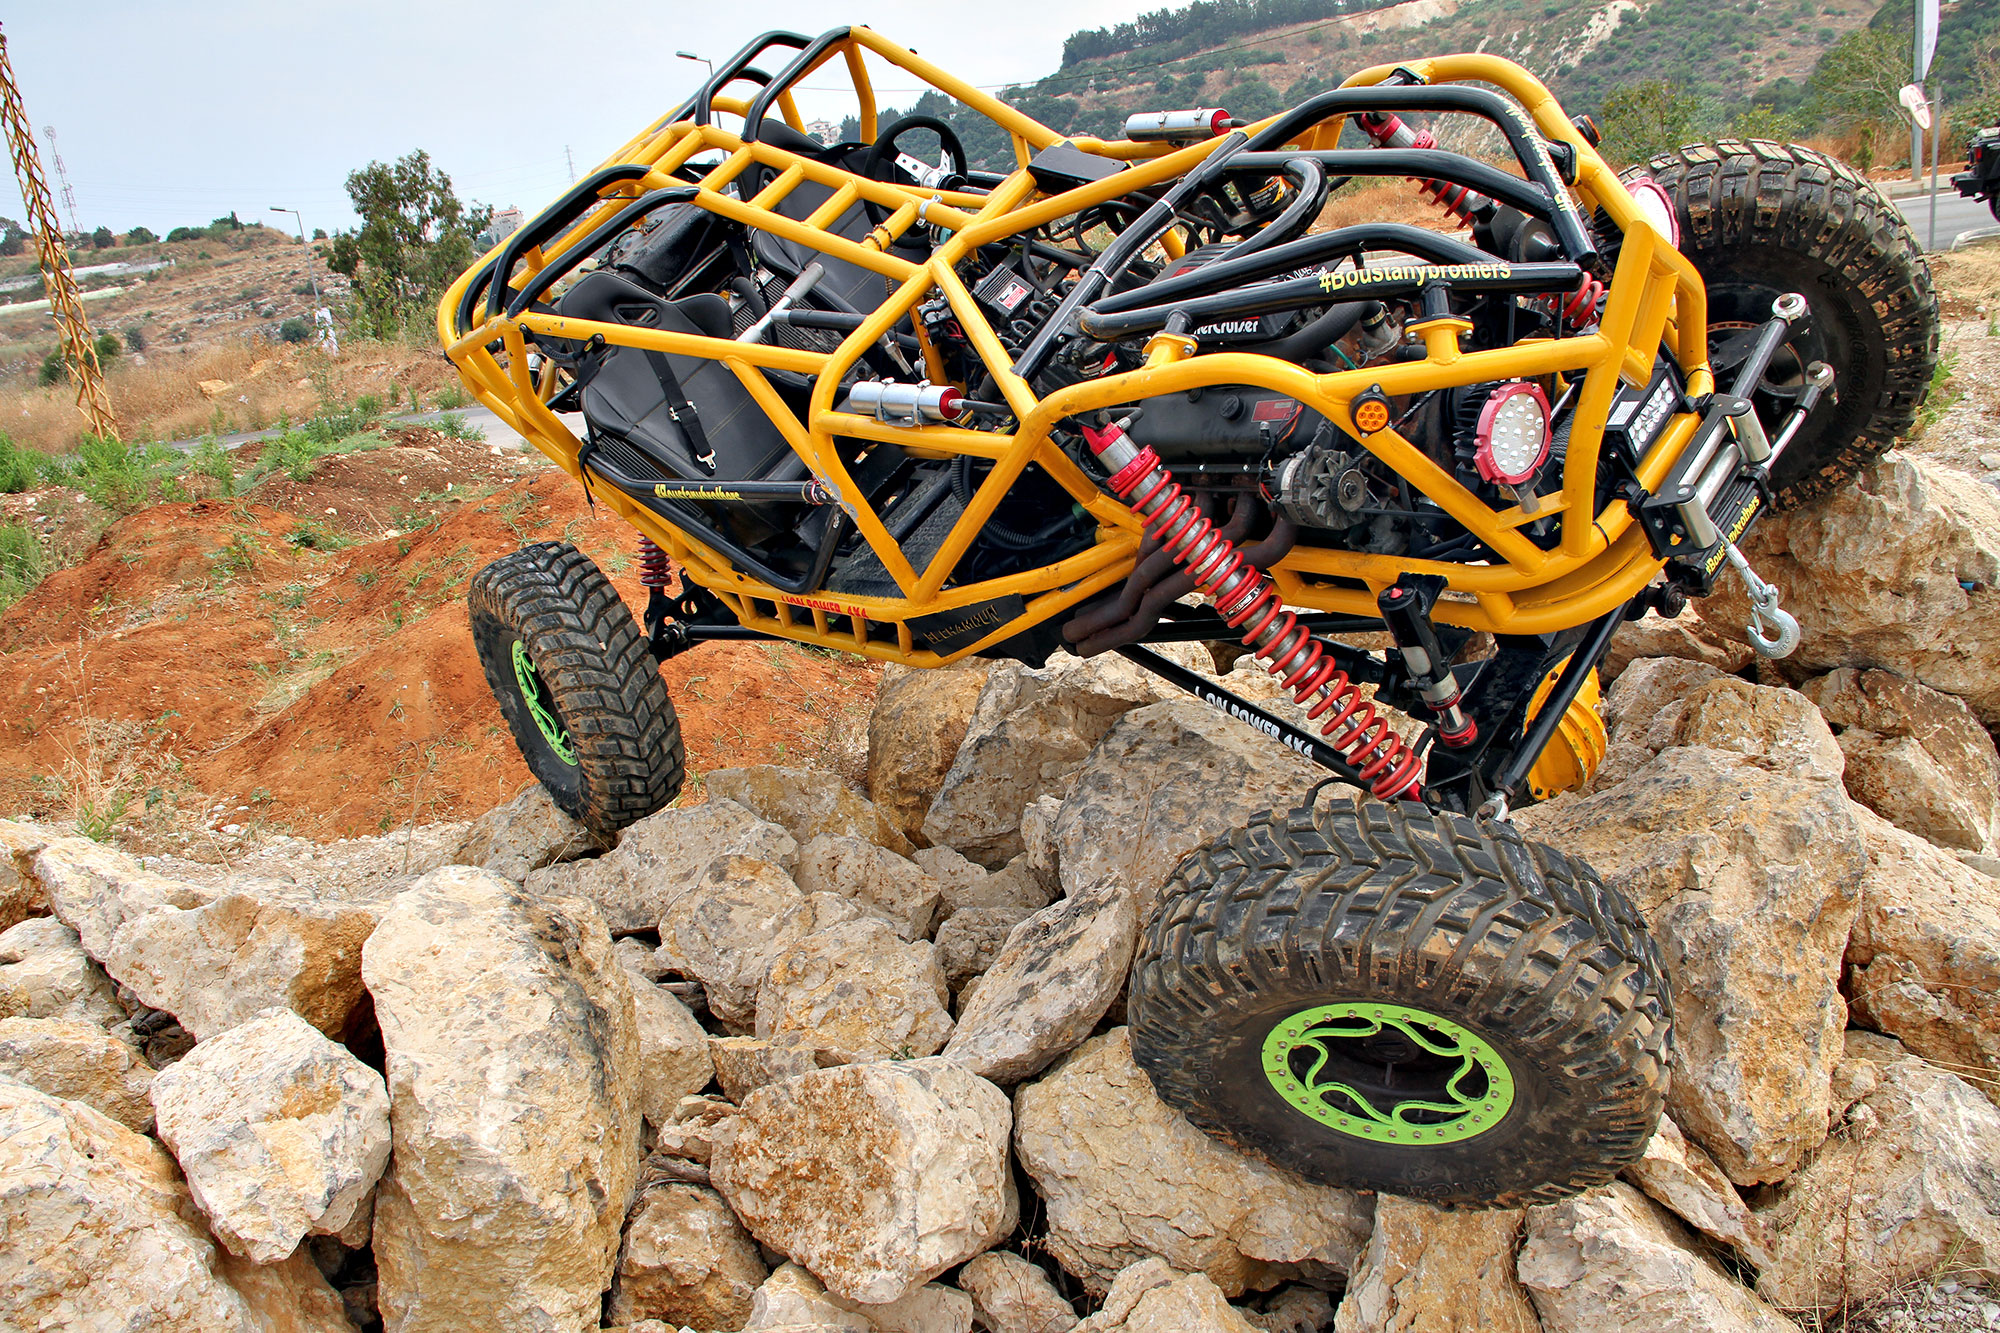 Rzr Bouncer For Sale >> Rock Bouncer for Sale - 2018 - 2019 New Car Reviews by girlcodemovement